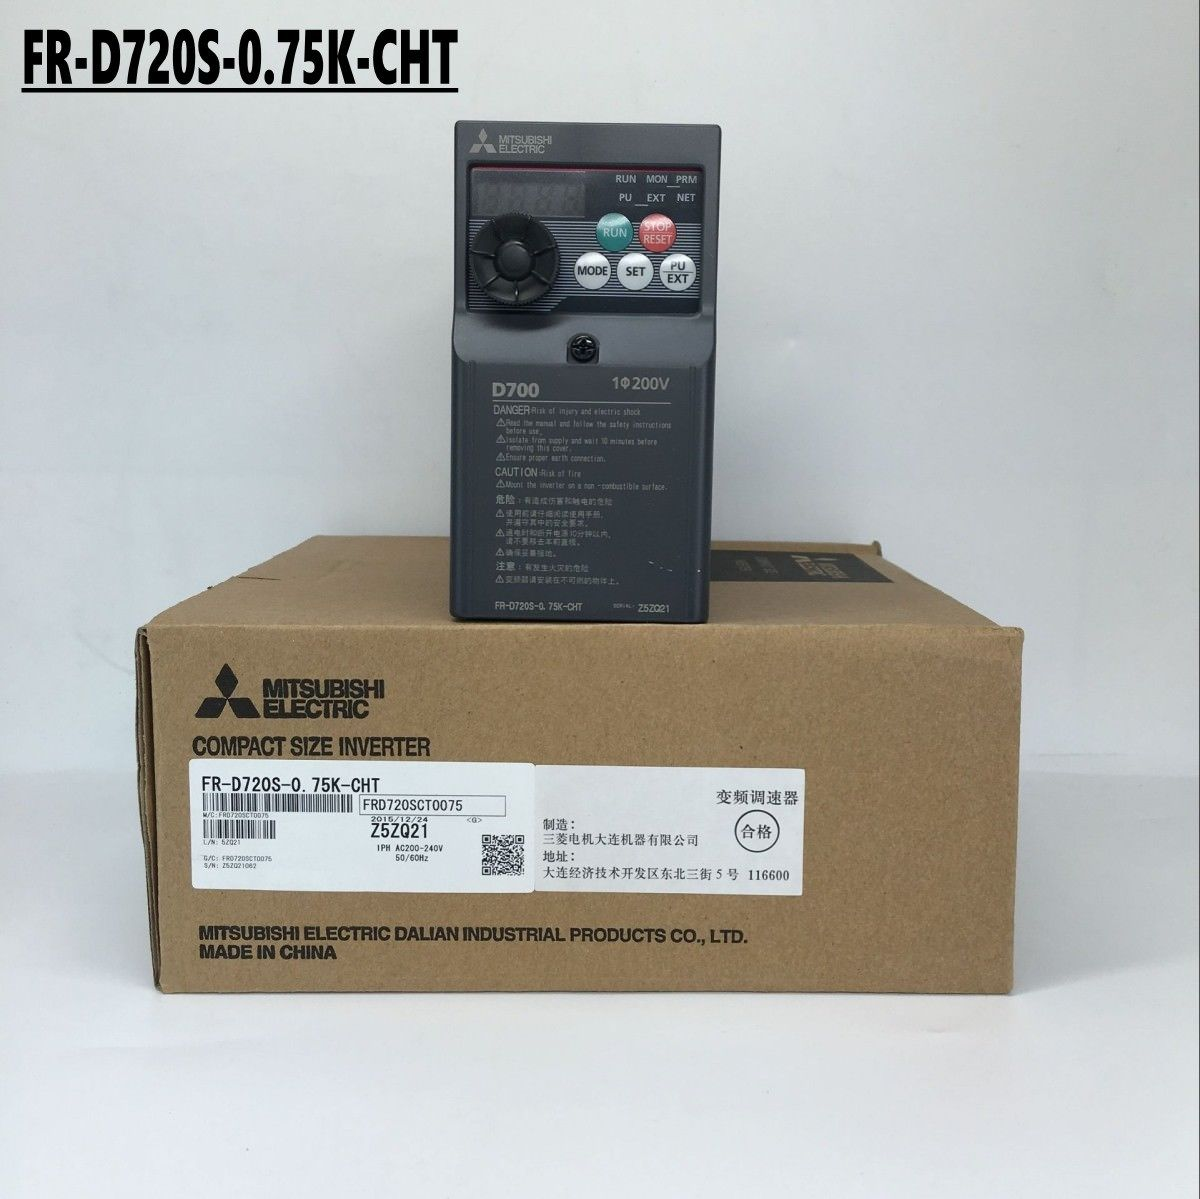 Brand New MITSUBISHI Inverter FR-D720S-0.75K-CHT IN BOX FR-D720S0.75KCHT